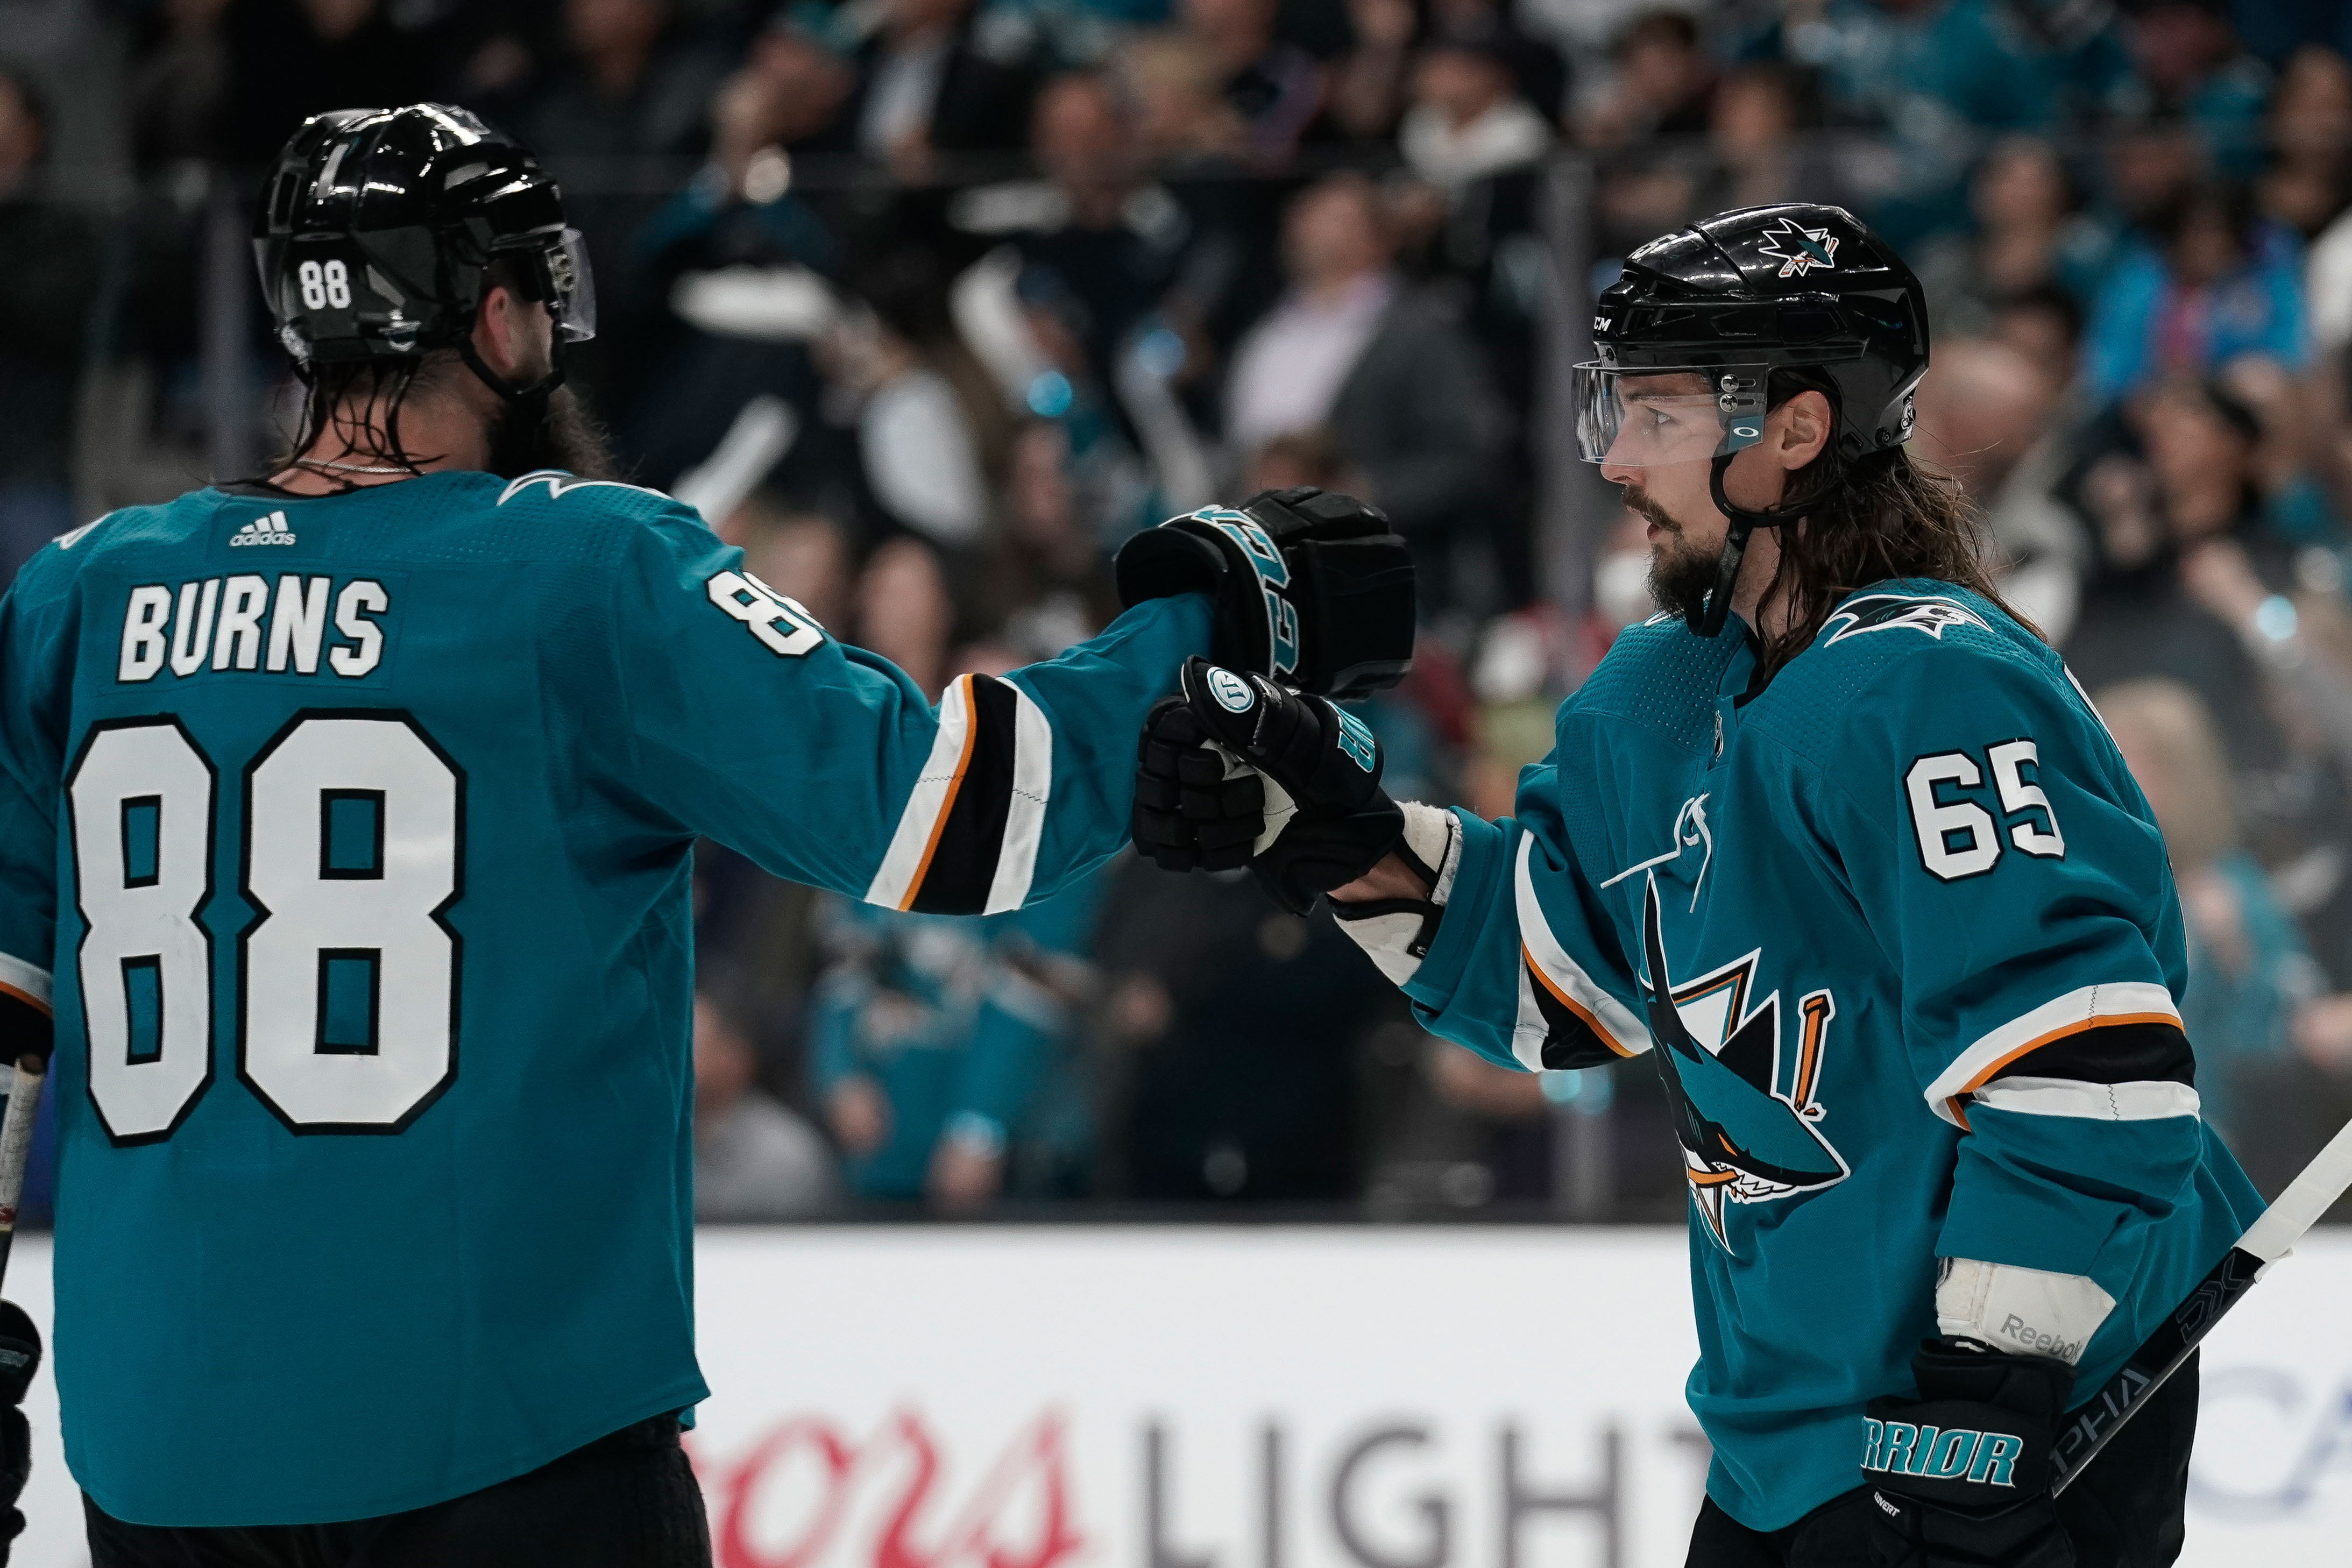 San Jose Sharks defenseman Brent Burns (88) congratulates defenseman Erik Karlsson (65) against the Vegas Golden Knights during the first period in game two of the first round of the 2019 Stanley Cup Playoffs at SAP Center at San Jose.